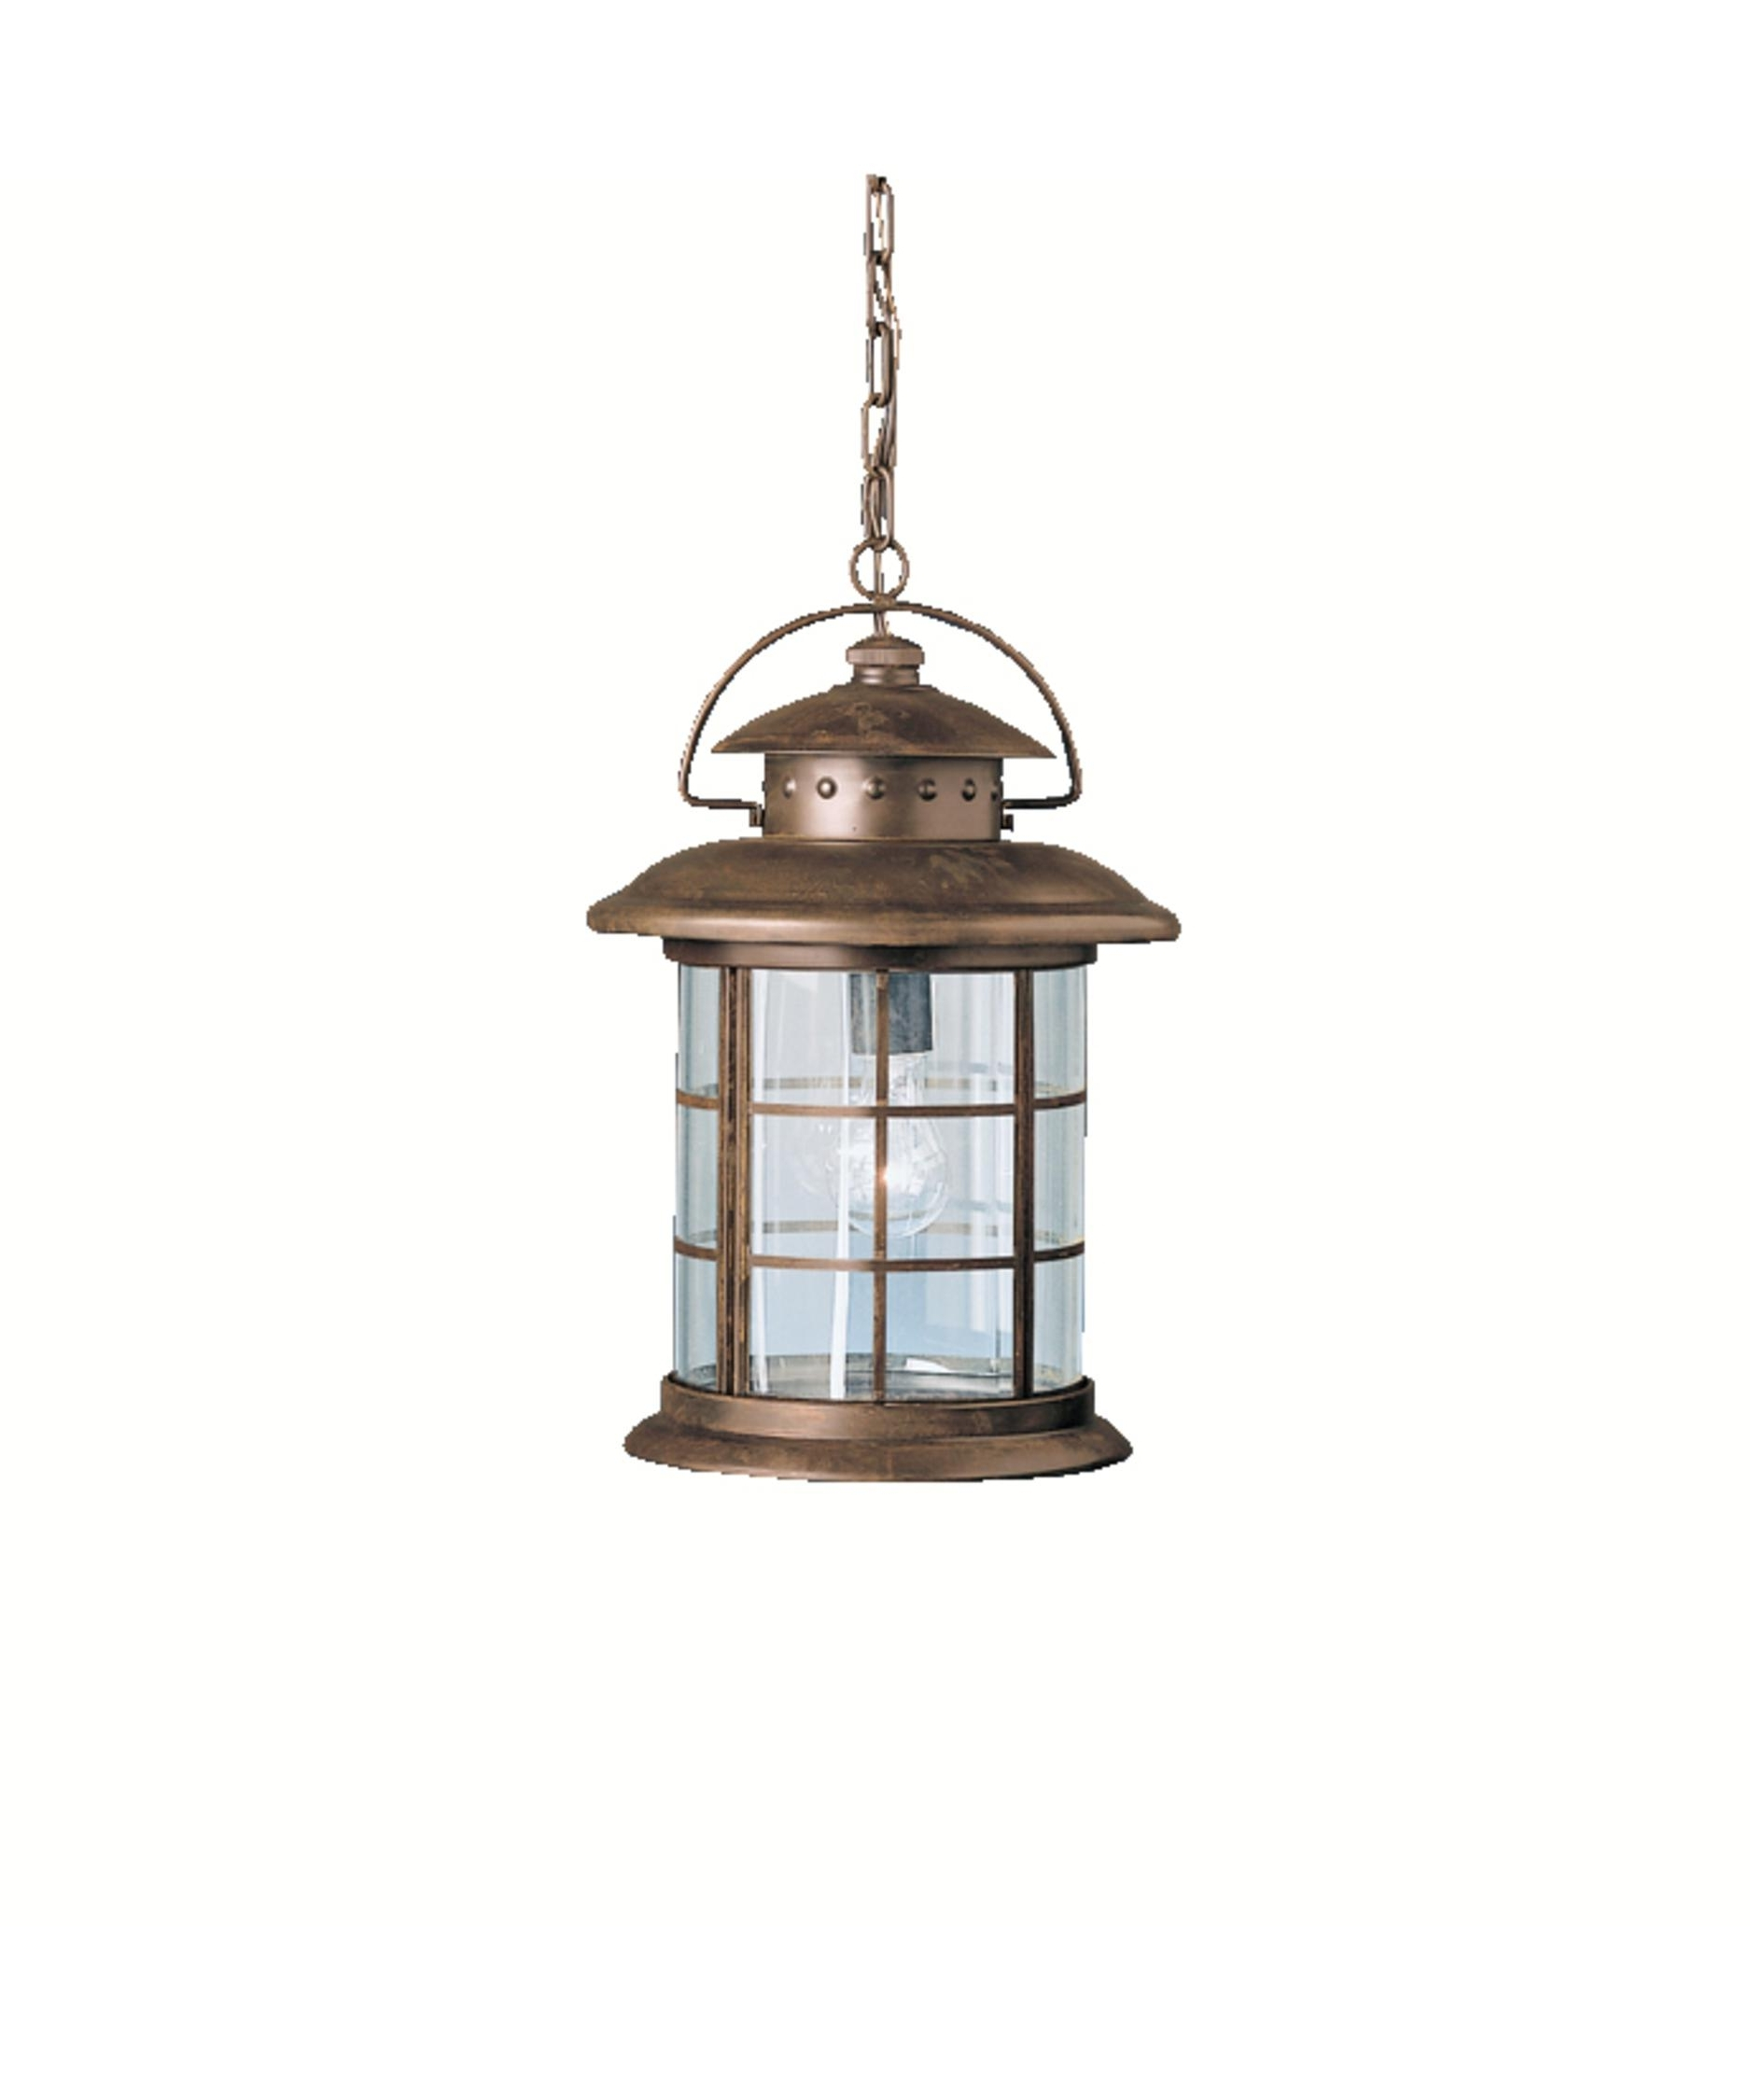 Kichler 9870 Rustic 11 Inch Wide 1 Light Outdoor Hanging Lantern Throughout Fashionable Rustic Outdoor Hanging Lights (View 4 of 20)